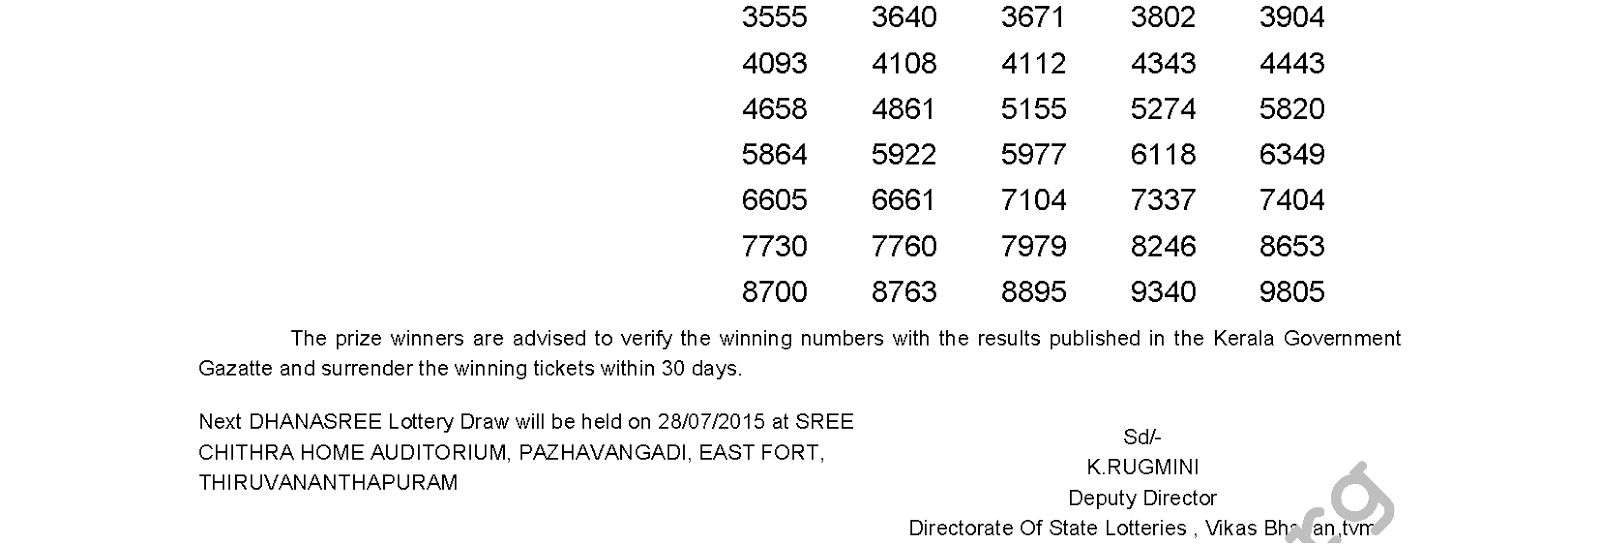 DHANASREE Lottery DS 195 Result 21-7-2015